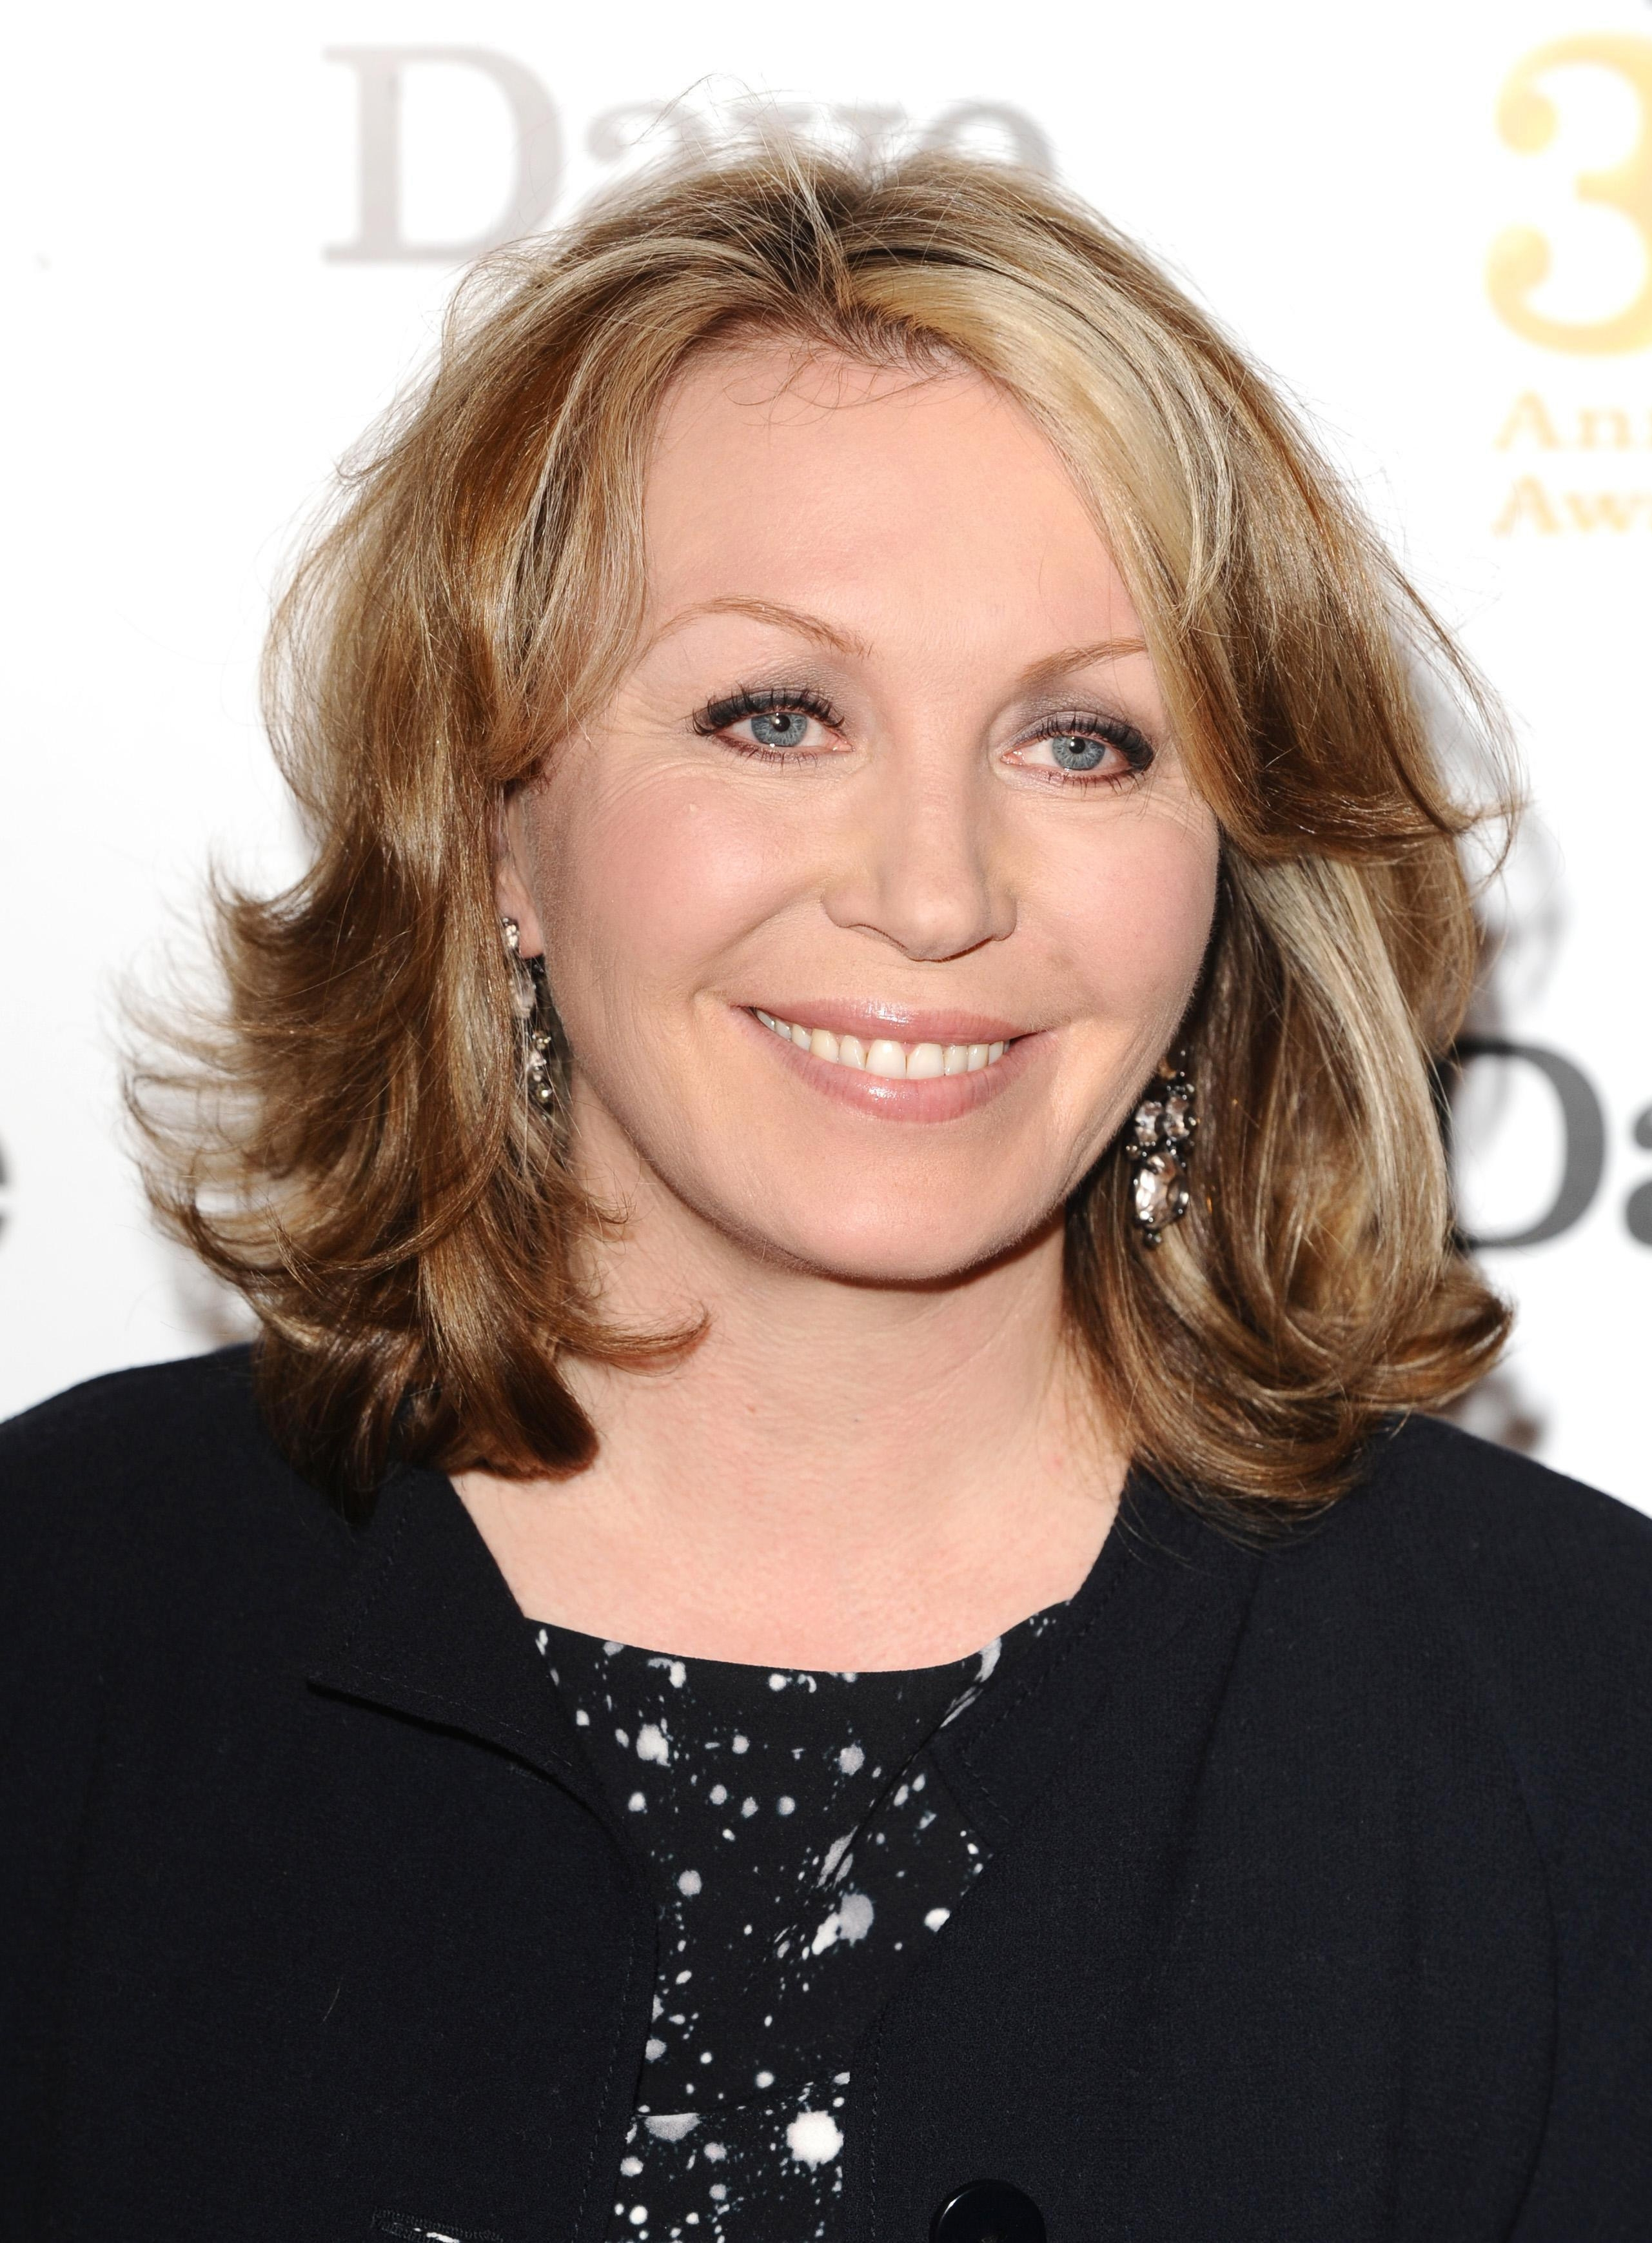 Kirsty Young attacks pushy parents